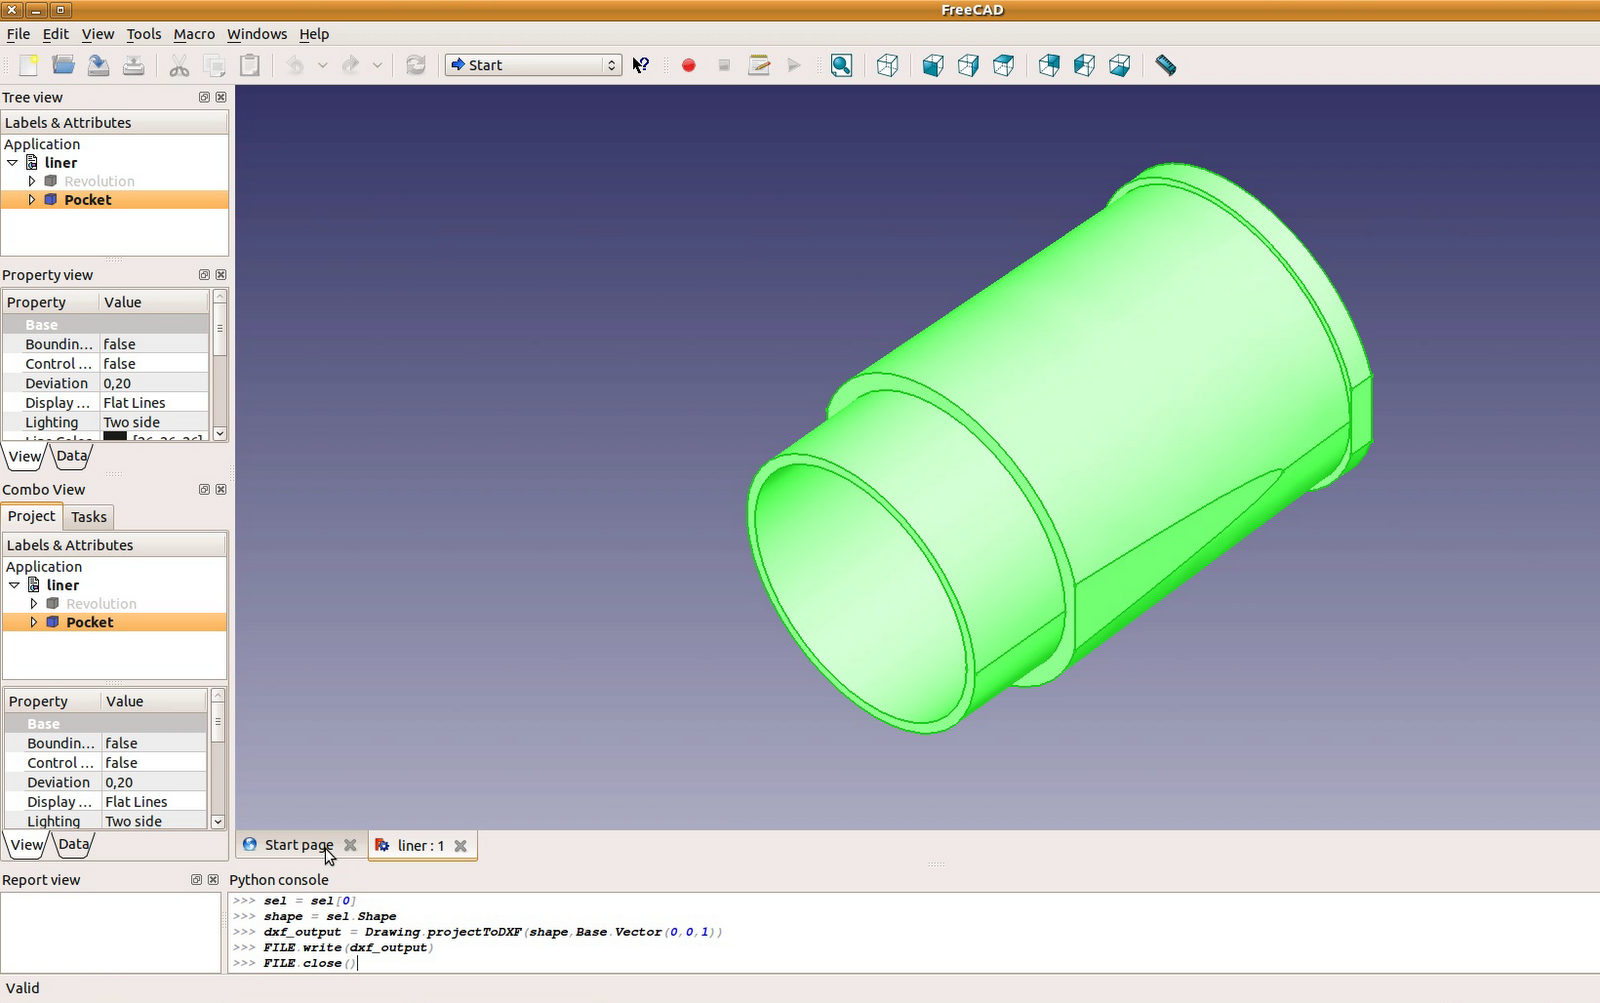 freecad tutorial engine 8 liner blueprint freecad